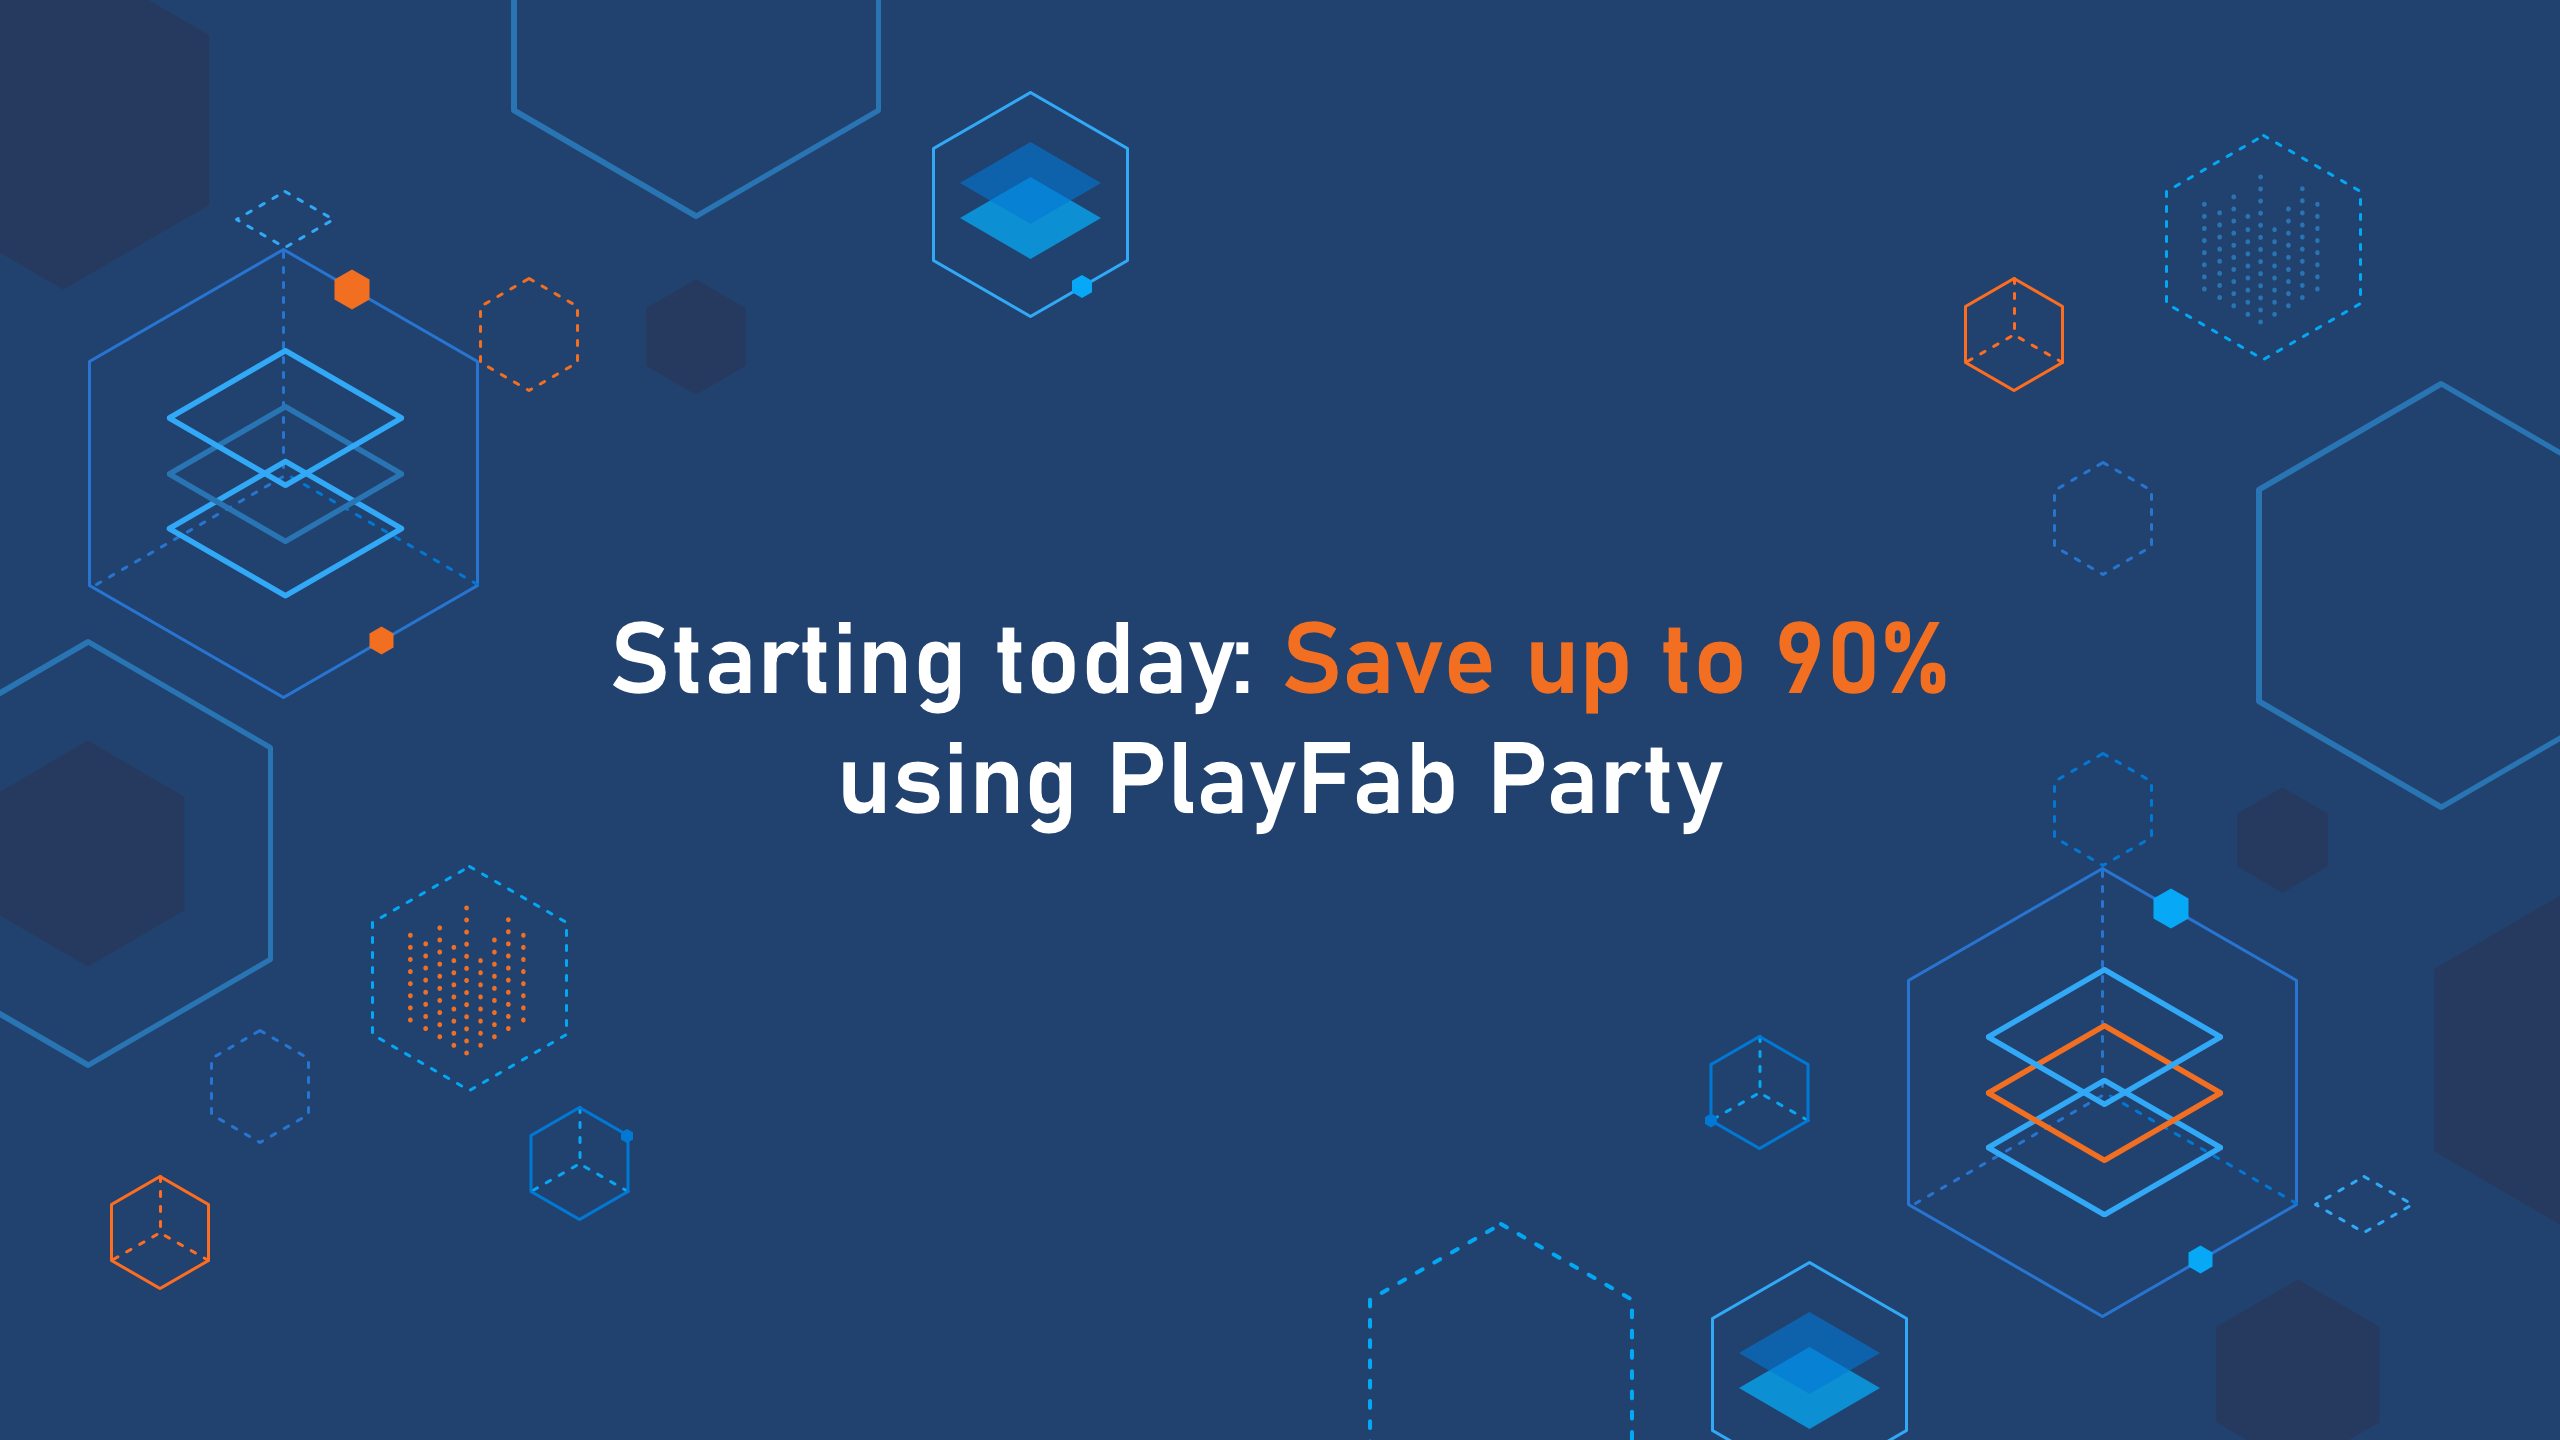 Starting today: Save up to 90% using PlayFab Party